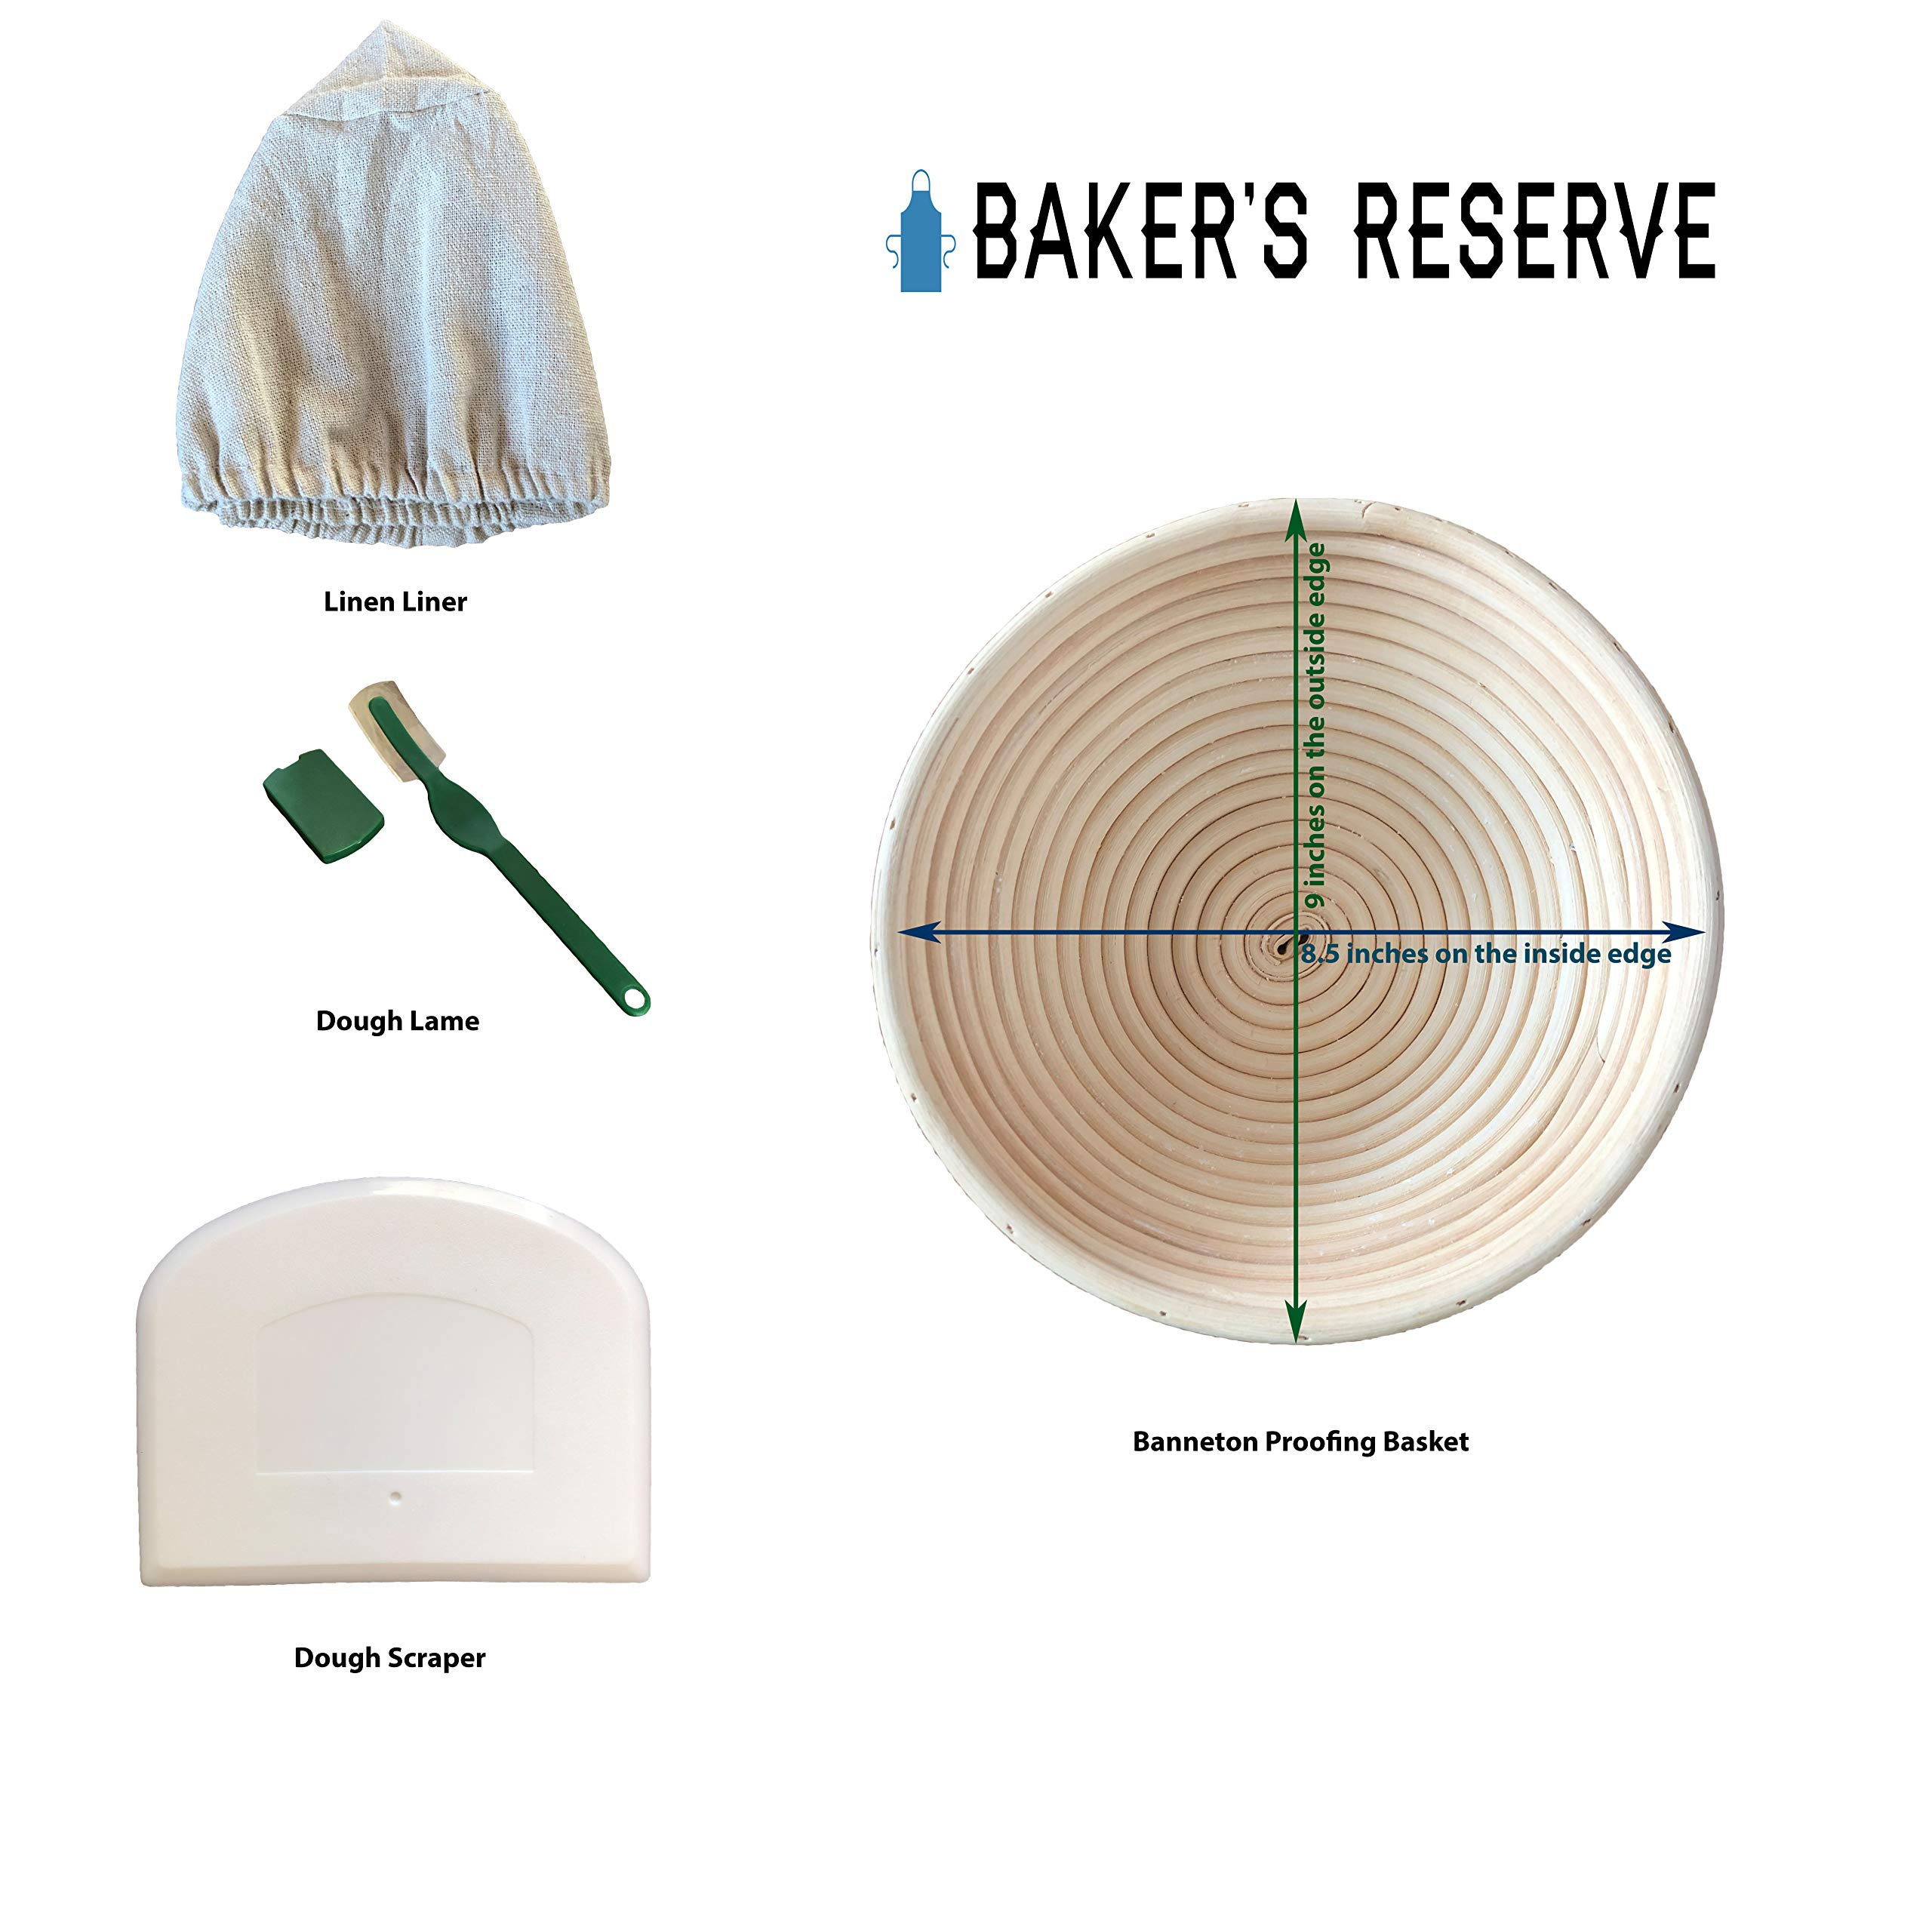 Make Beautiful Sourdough Bread with Baker's Reserve Ultimate Bread Baking Kit - Kit Includes Round 9 inch Banneton, Linen Liner, Dough Scraper and Dough Lame - Perfect for Making Rustic, Artisan Bread by Baker's Reserve (Image #2)